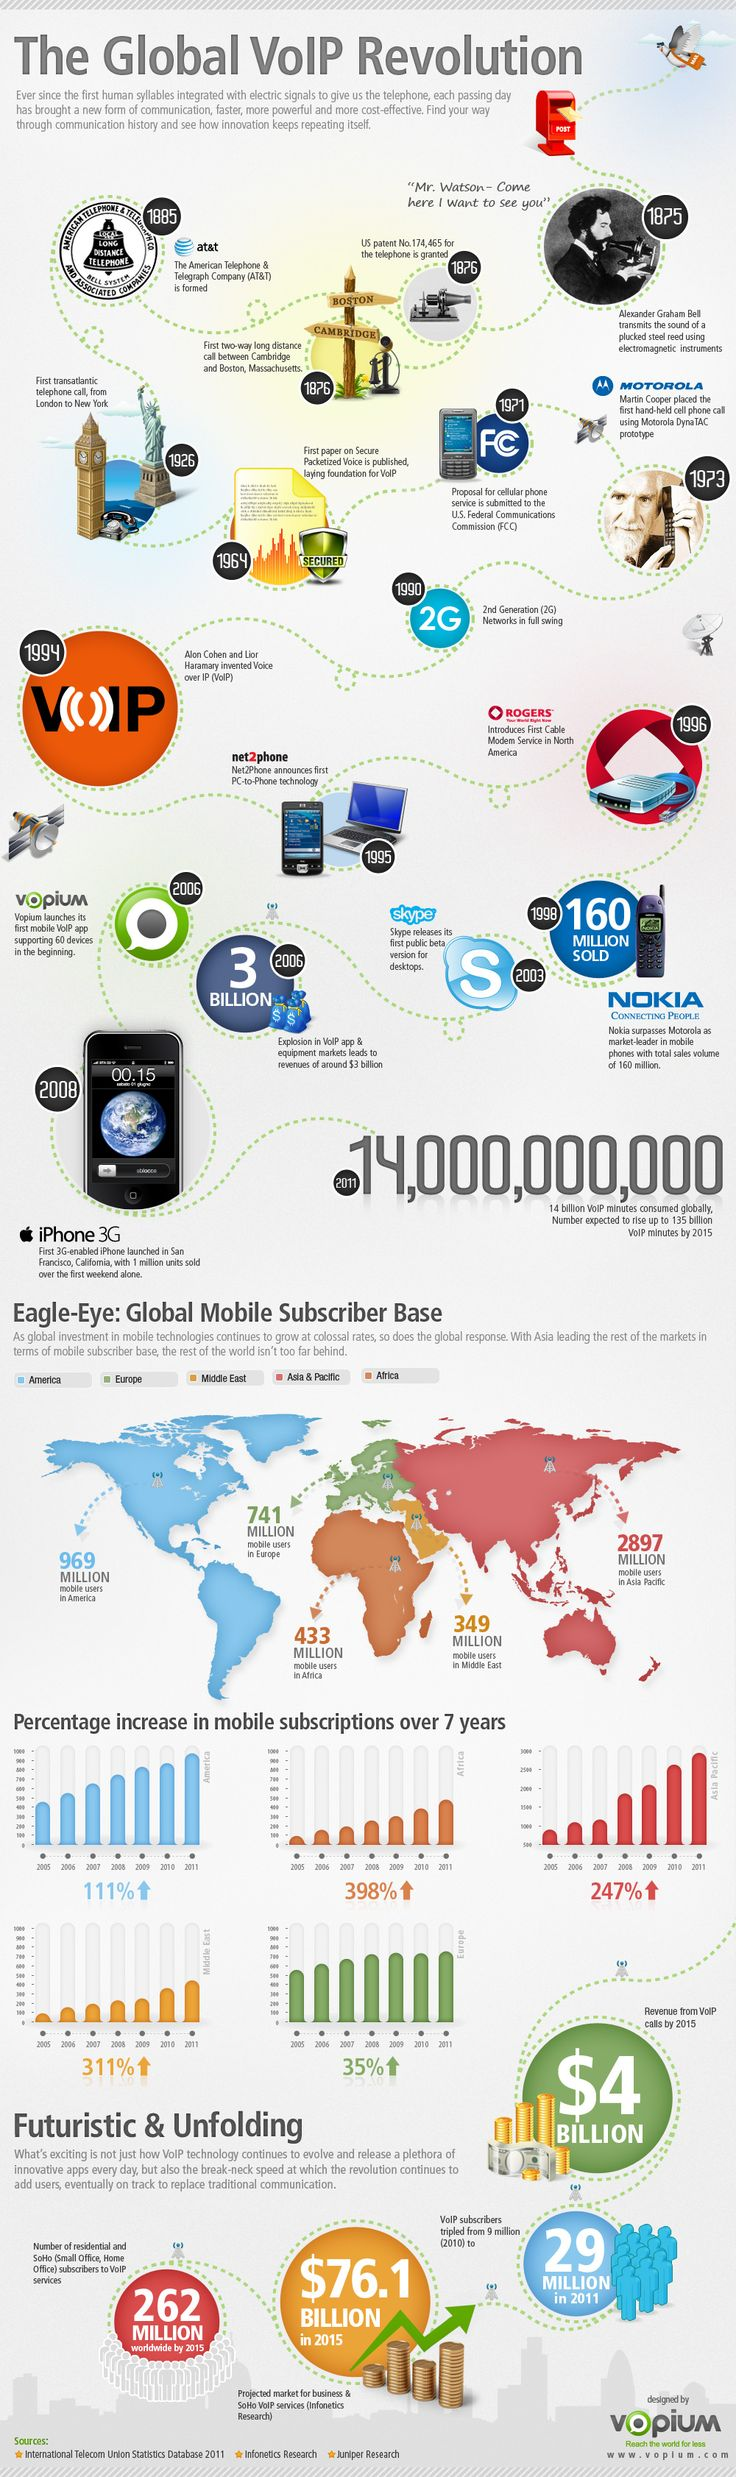 Global VoIP Revolution Infographic